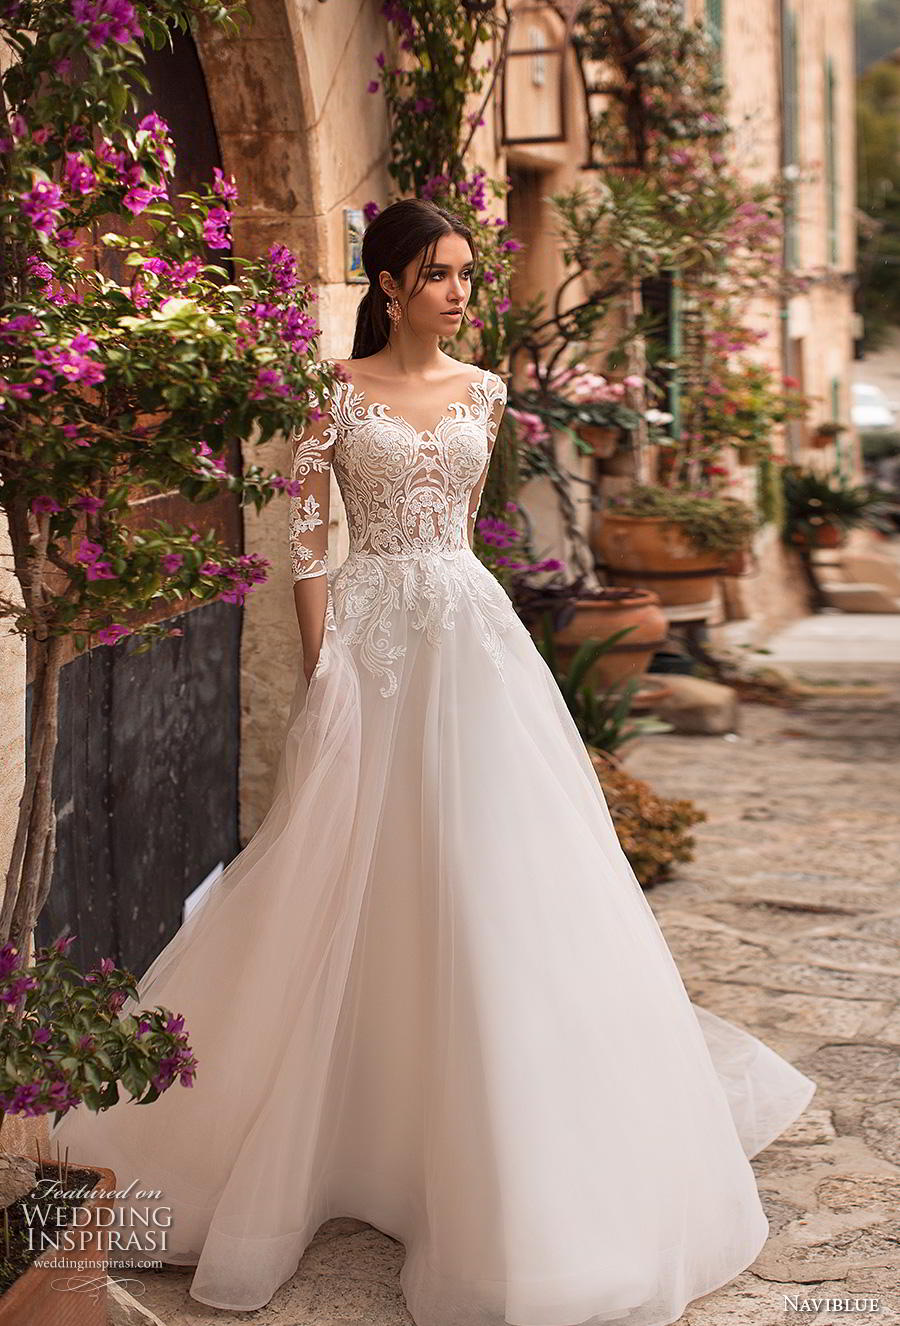 naviblue 2019 bridal half sleeves scoop neckline heavily embellished bodice romantic a line wedding dress lace back sweep train (2) mv